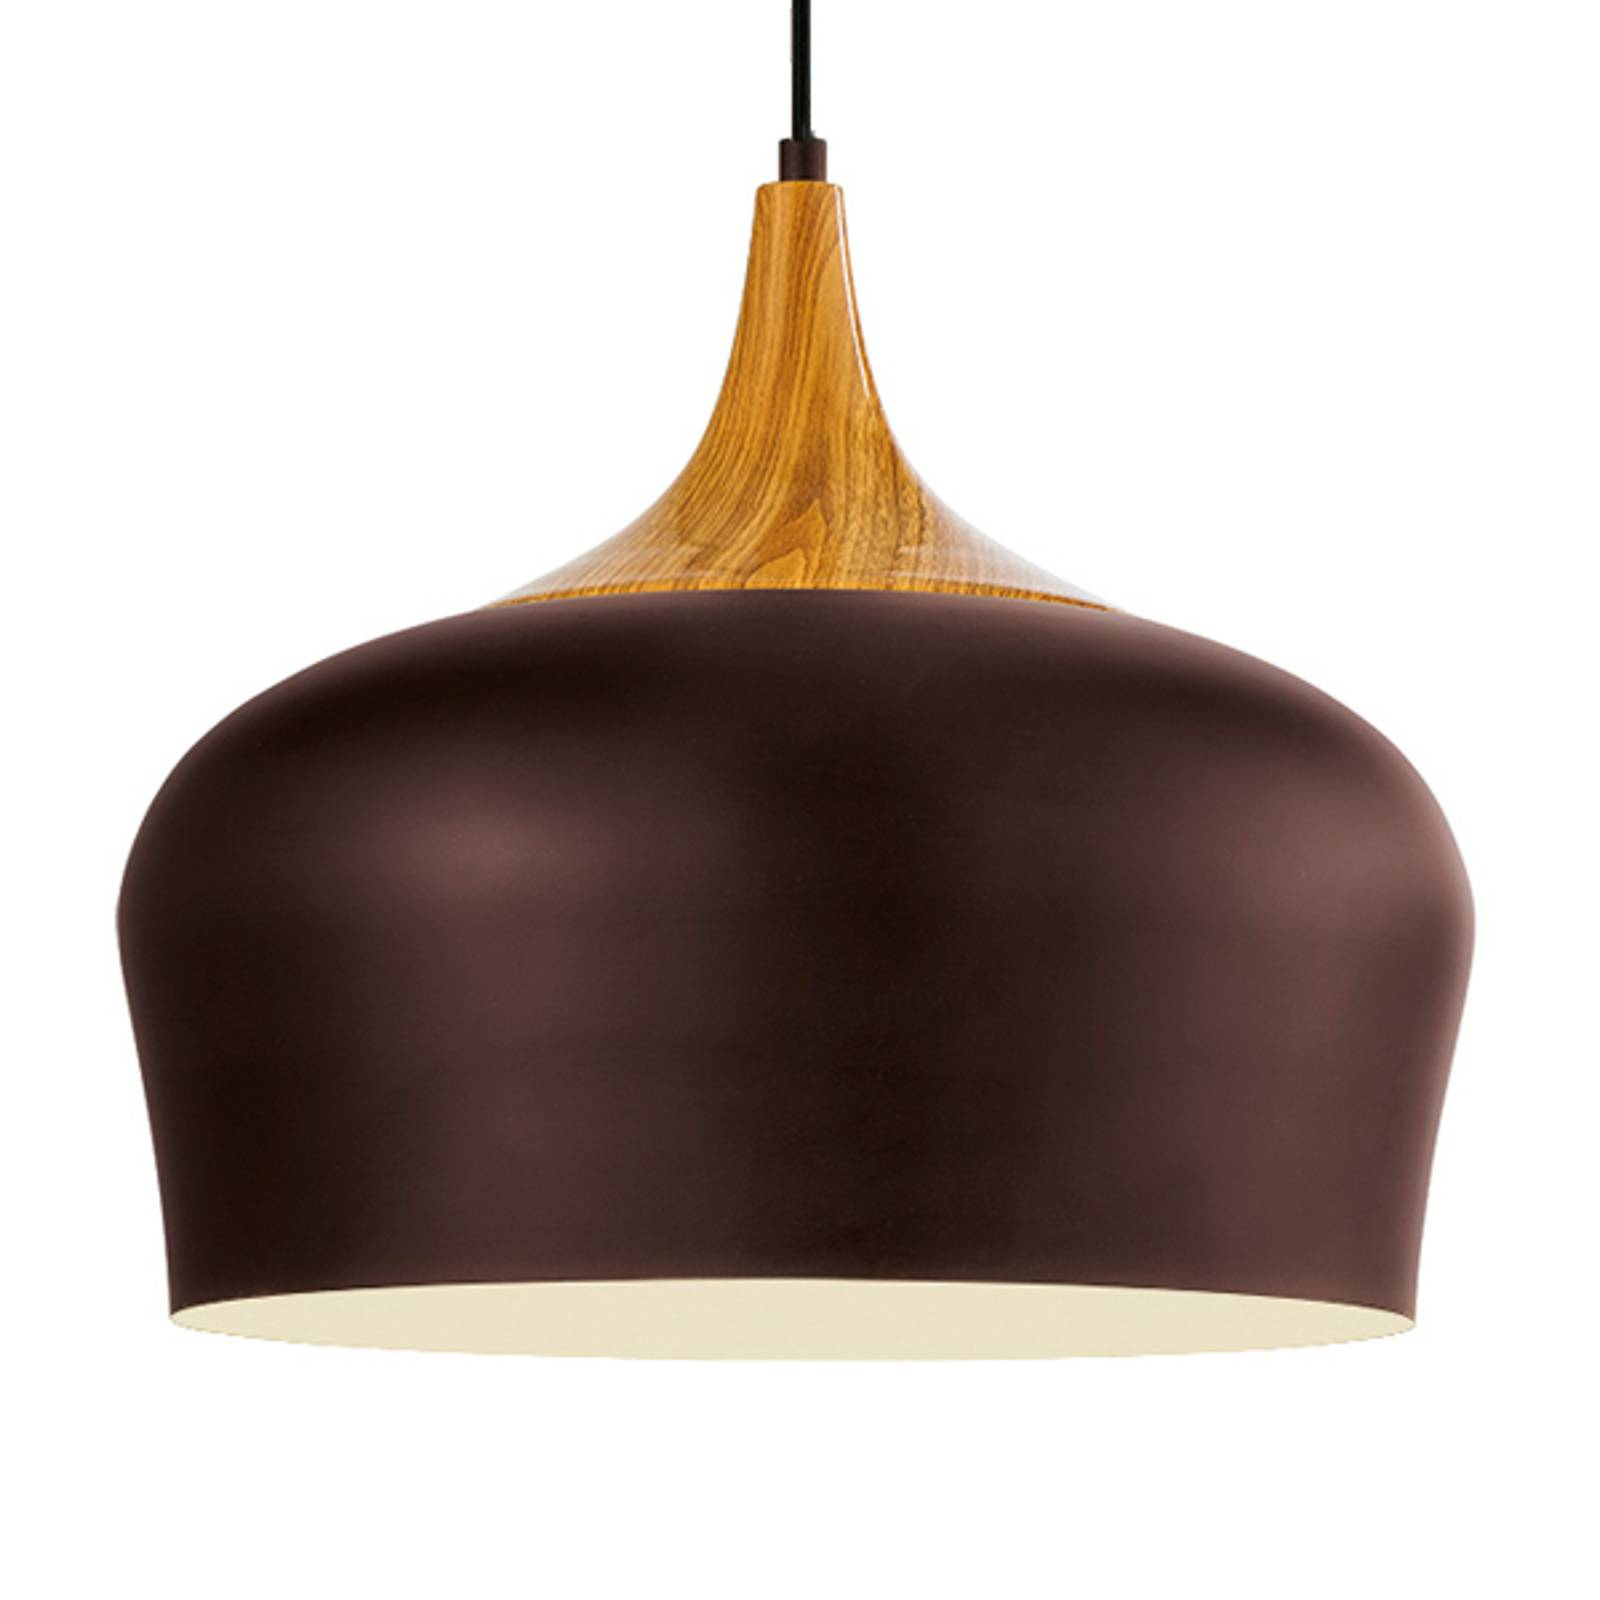 Obregon - elegant pendant lamp in brown from EGLO